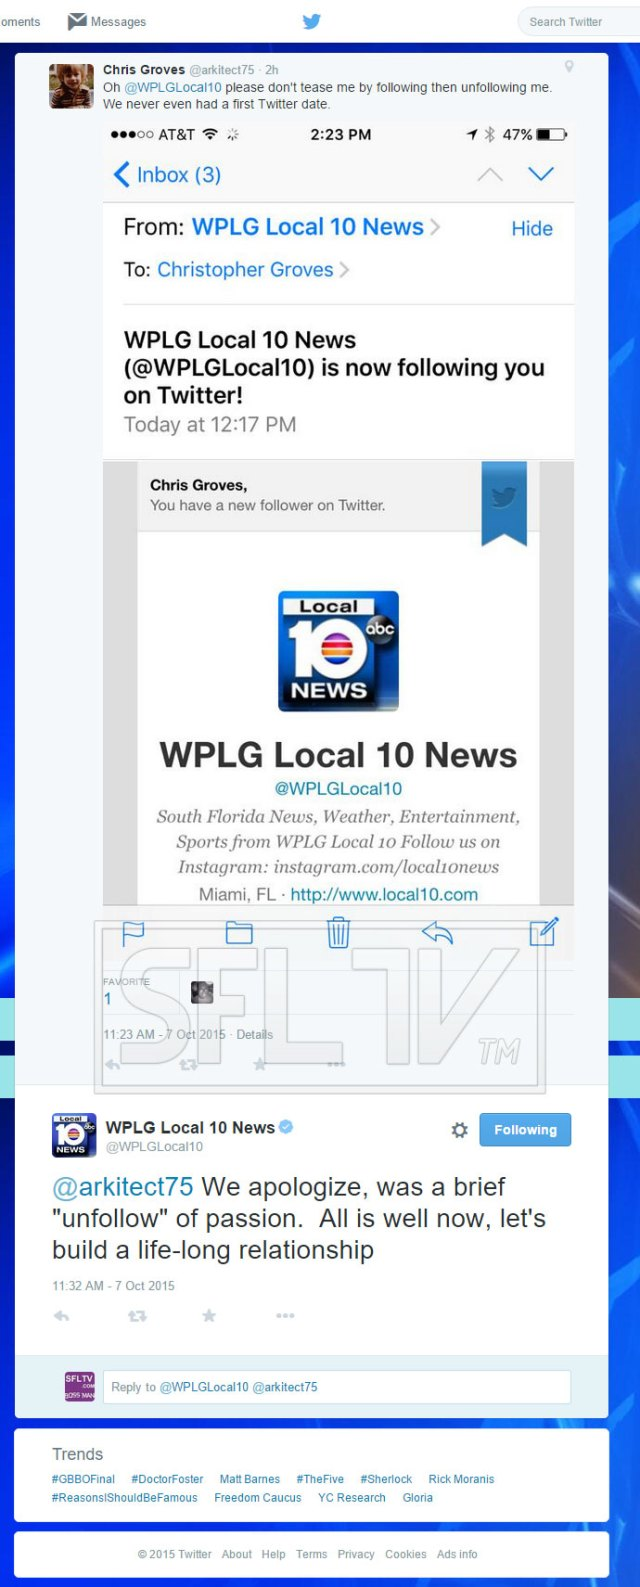 wplg-local10-unfloowing-users